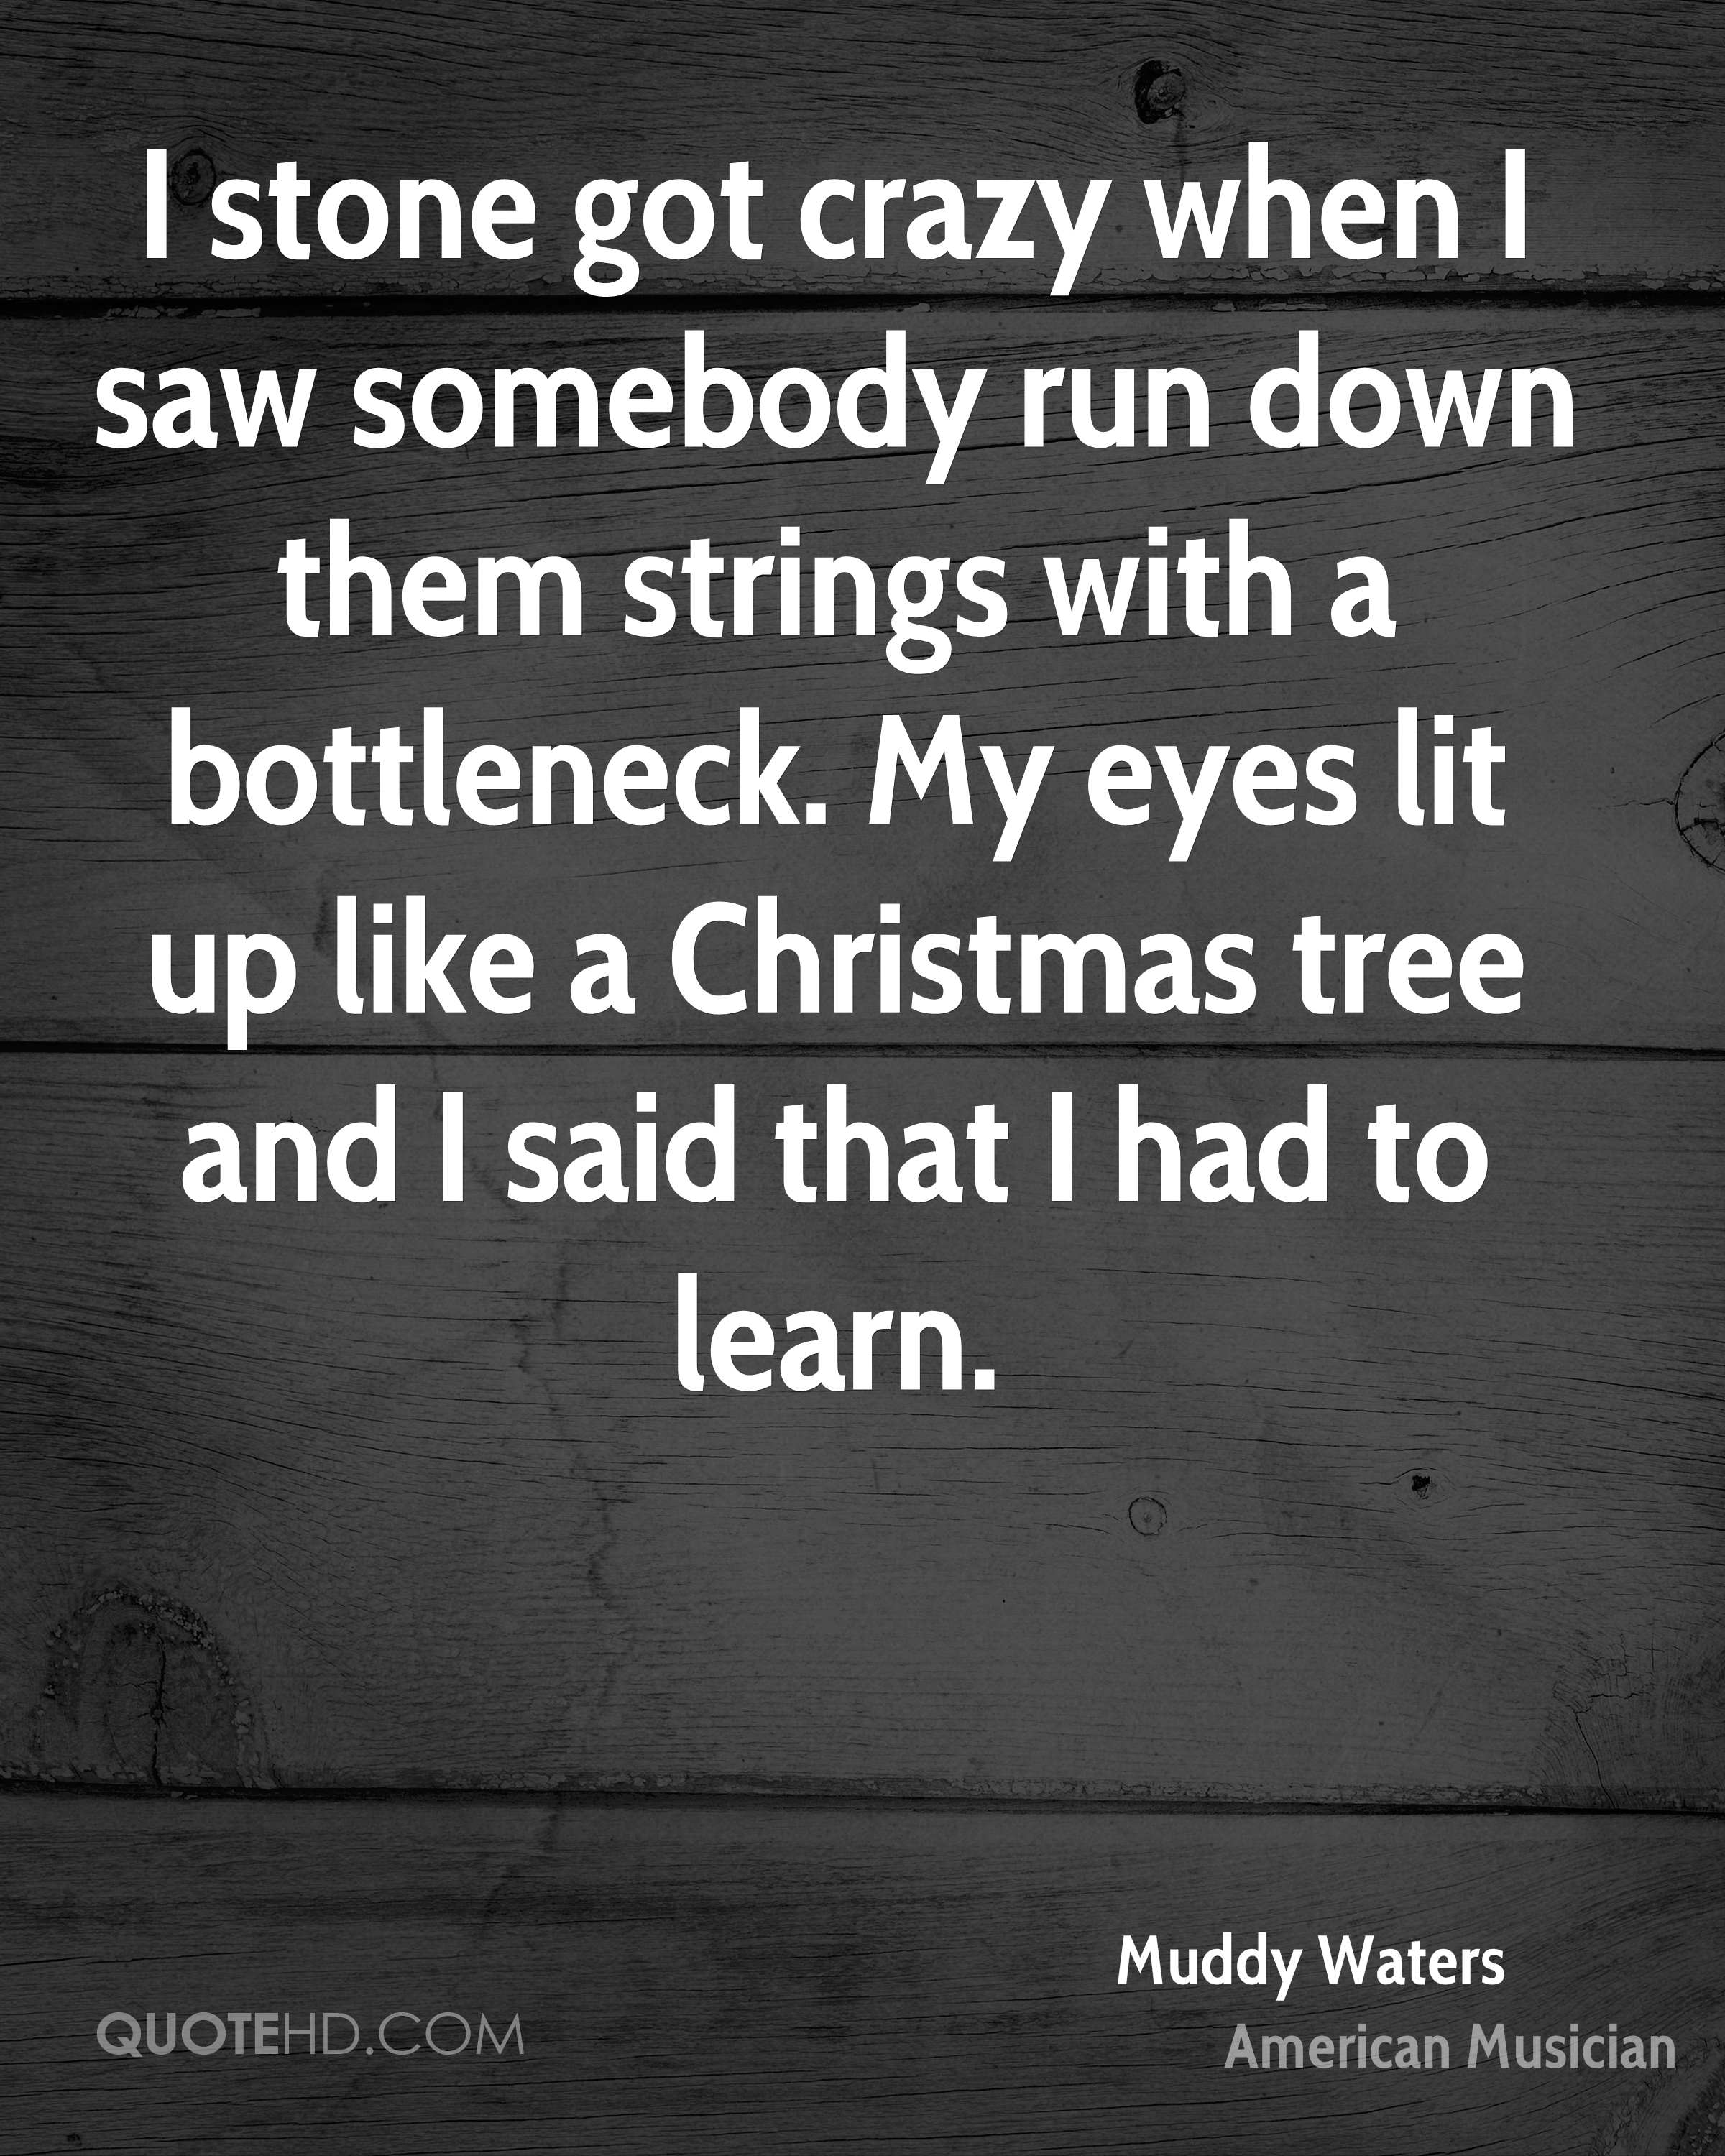 I stone got crazy when I saw somebody run down them strings with a bottleneck. My eyes lit up like a Christmas tree and I said that I had to learn.